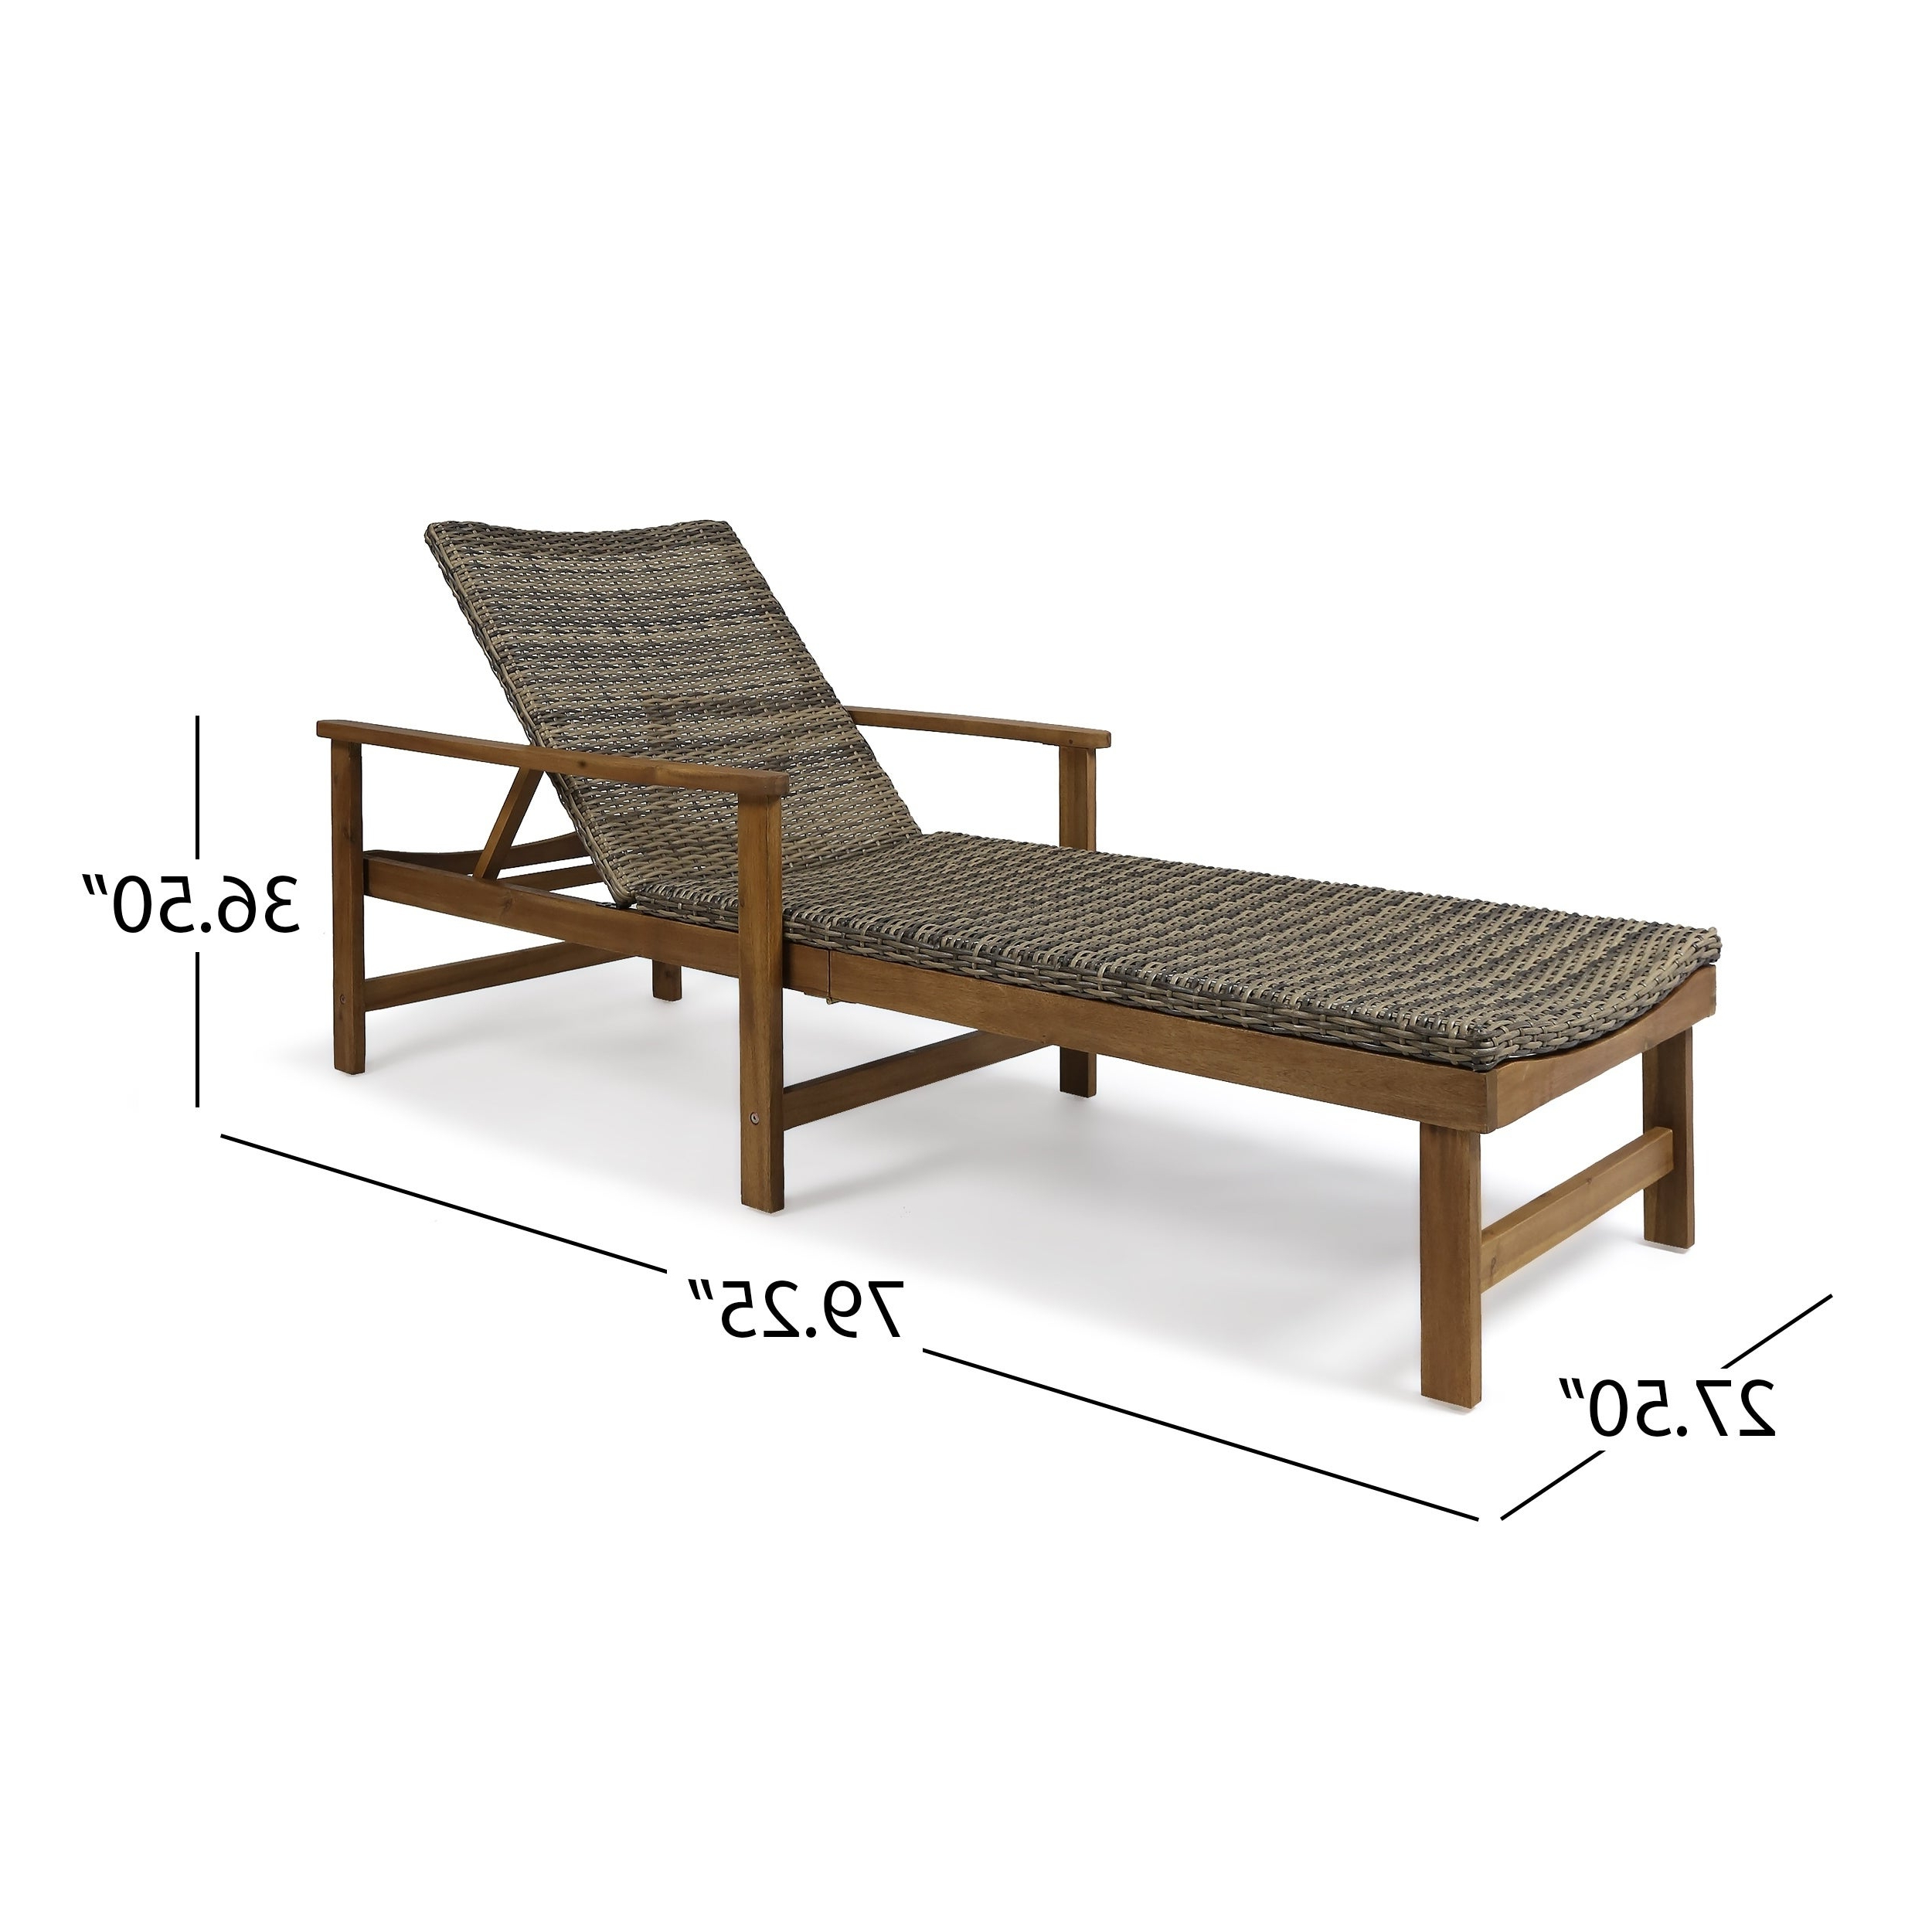 Popular Hampton Outdoor Chaise Lounges Acacia Wood And Wicker (Set Of 2) Christopher Knight Home Within Outdoor 3 Piece Acacia Wood Chaise Lounge Sets (View 25 of 25)